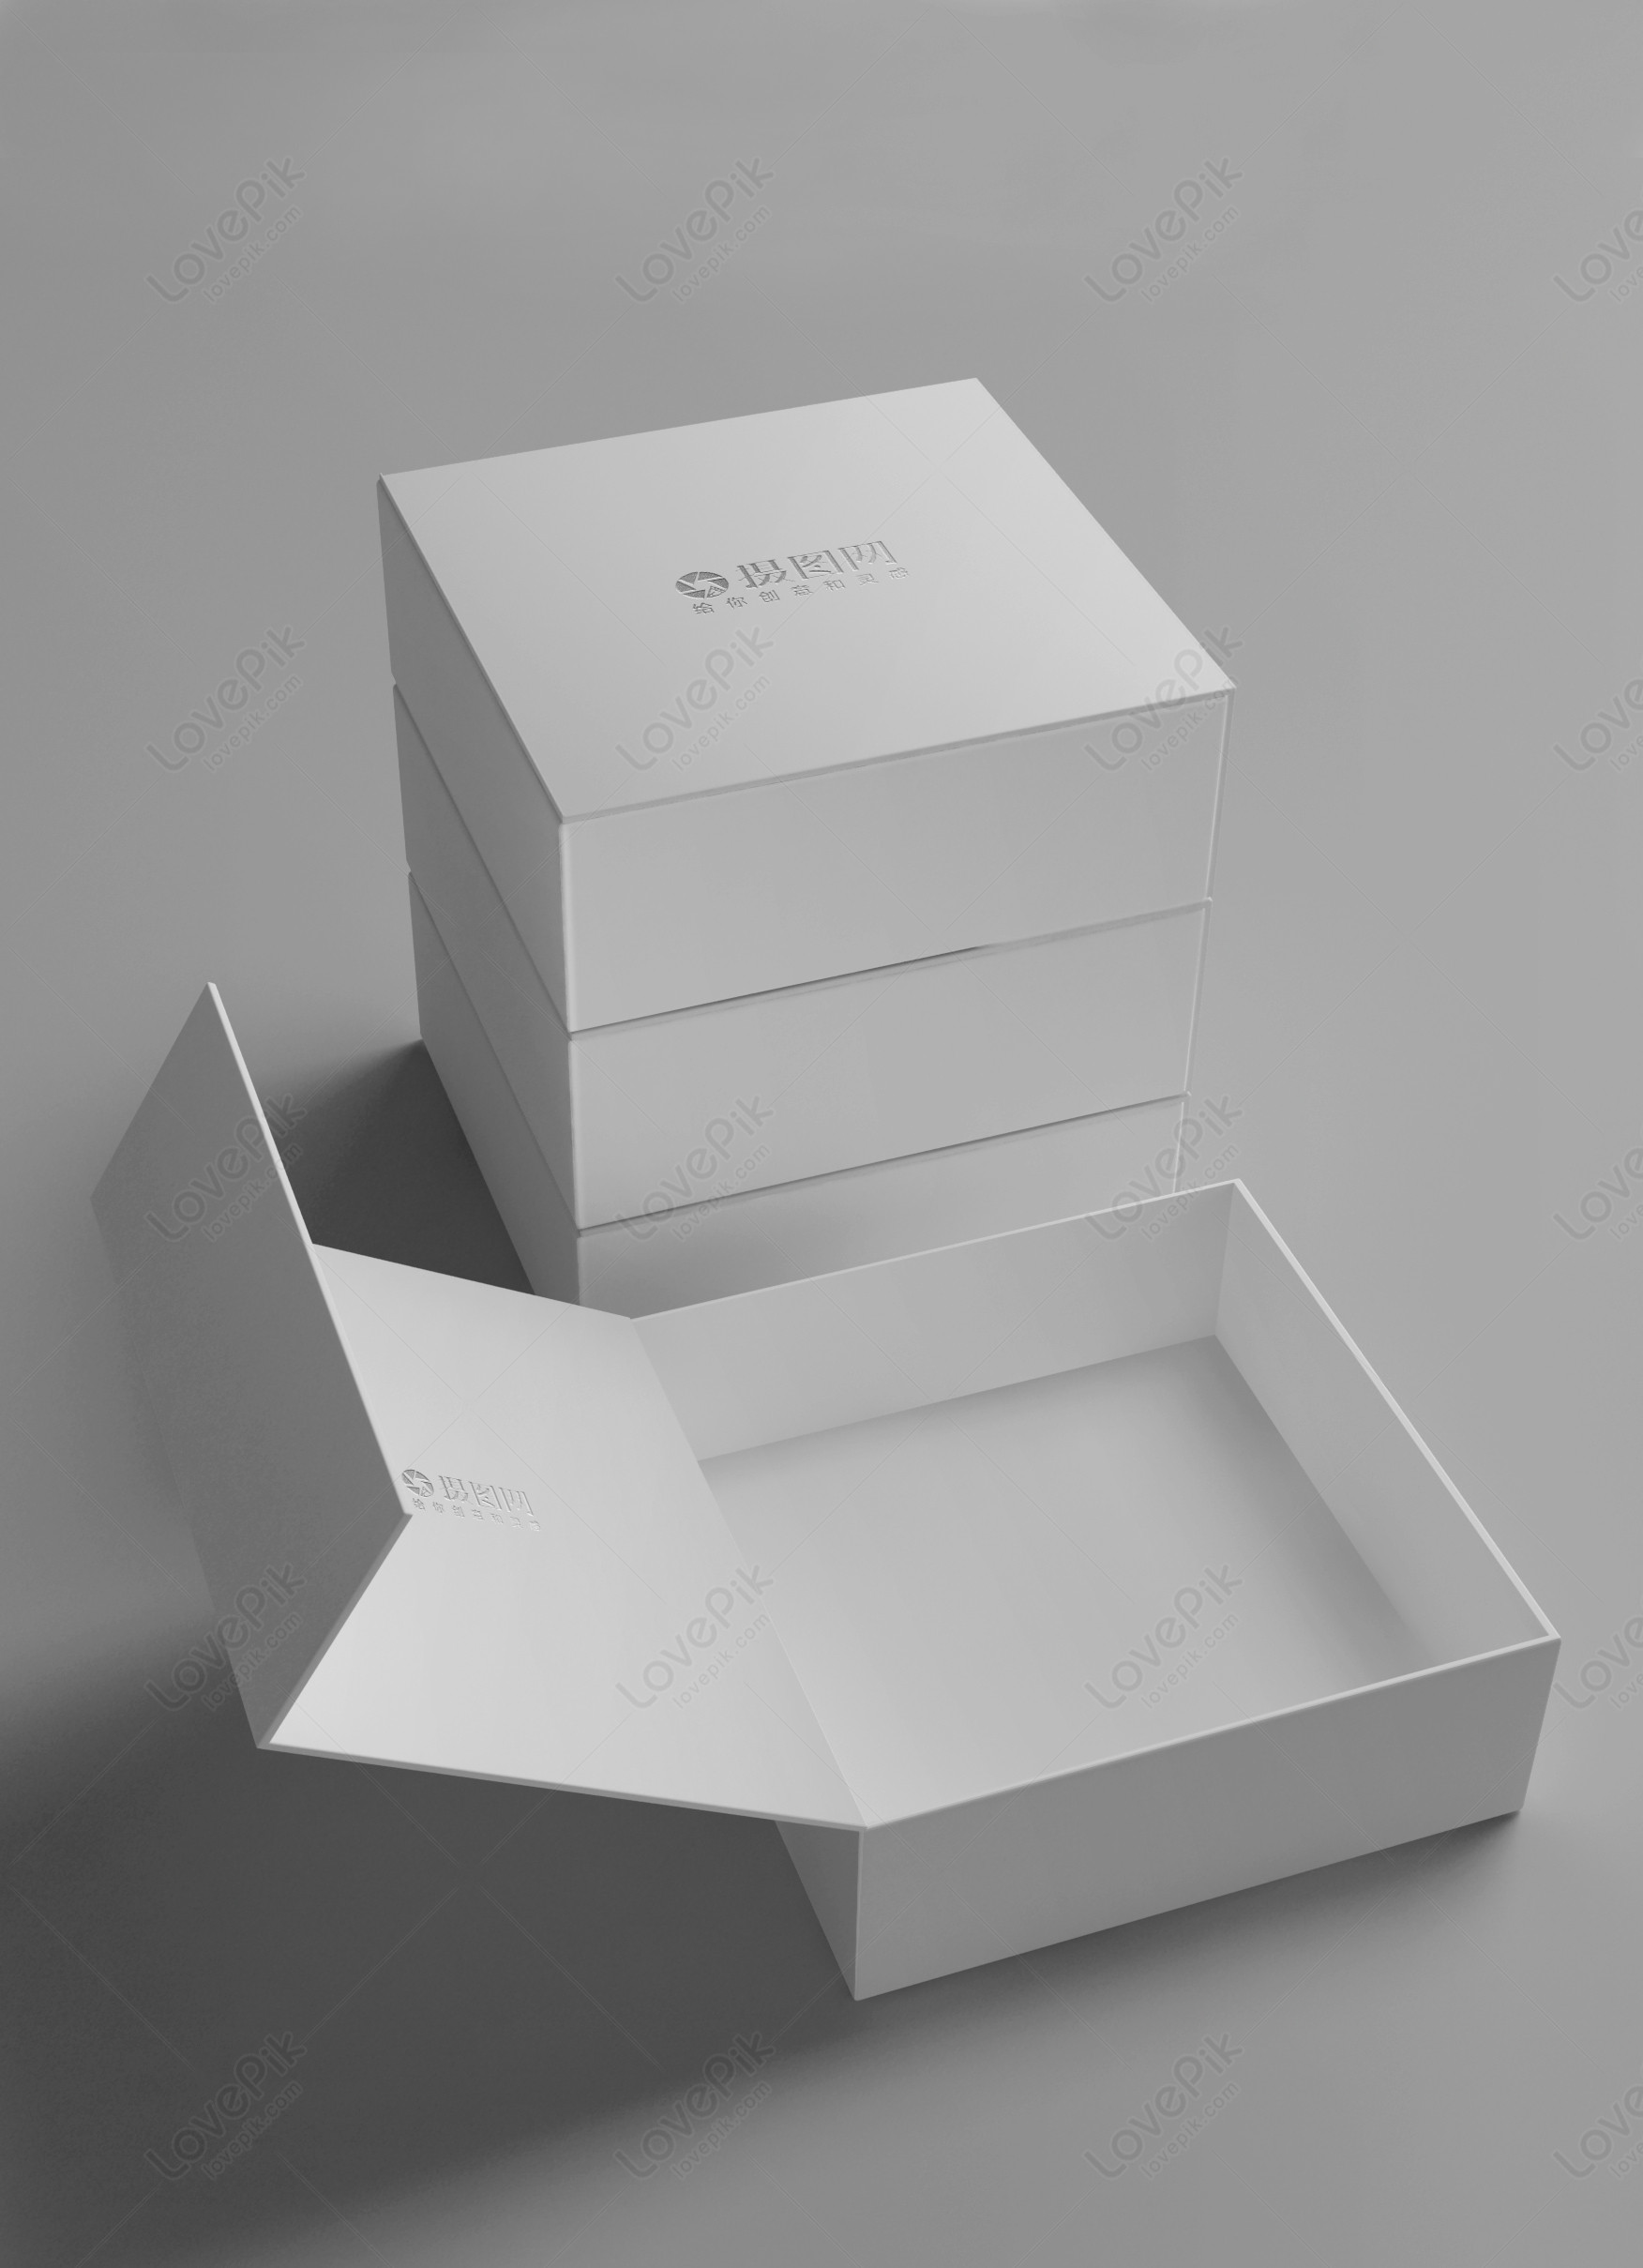 white gift box packaging mockup template image picture